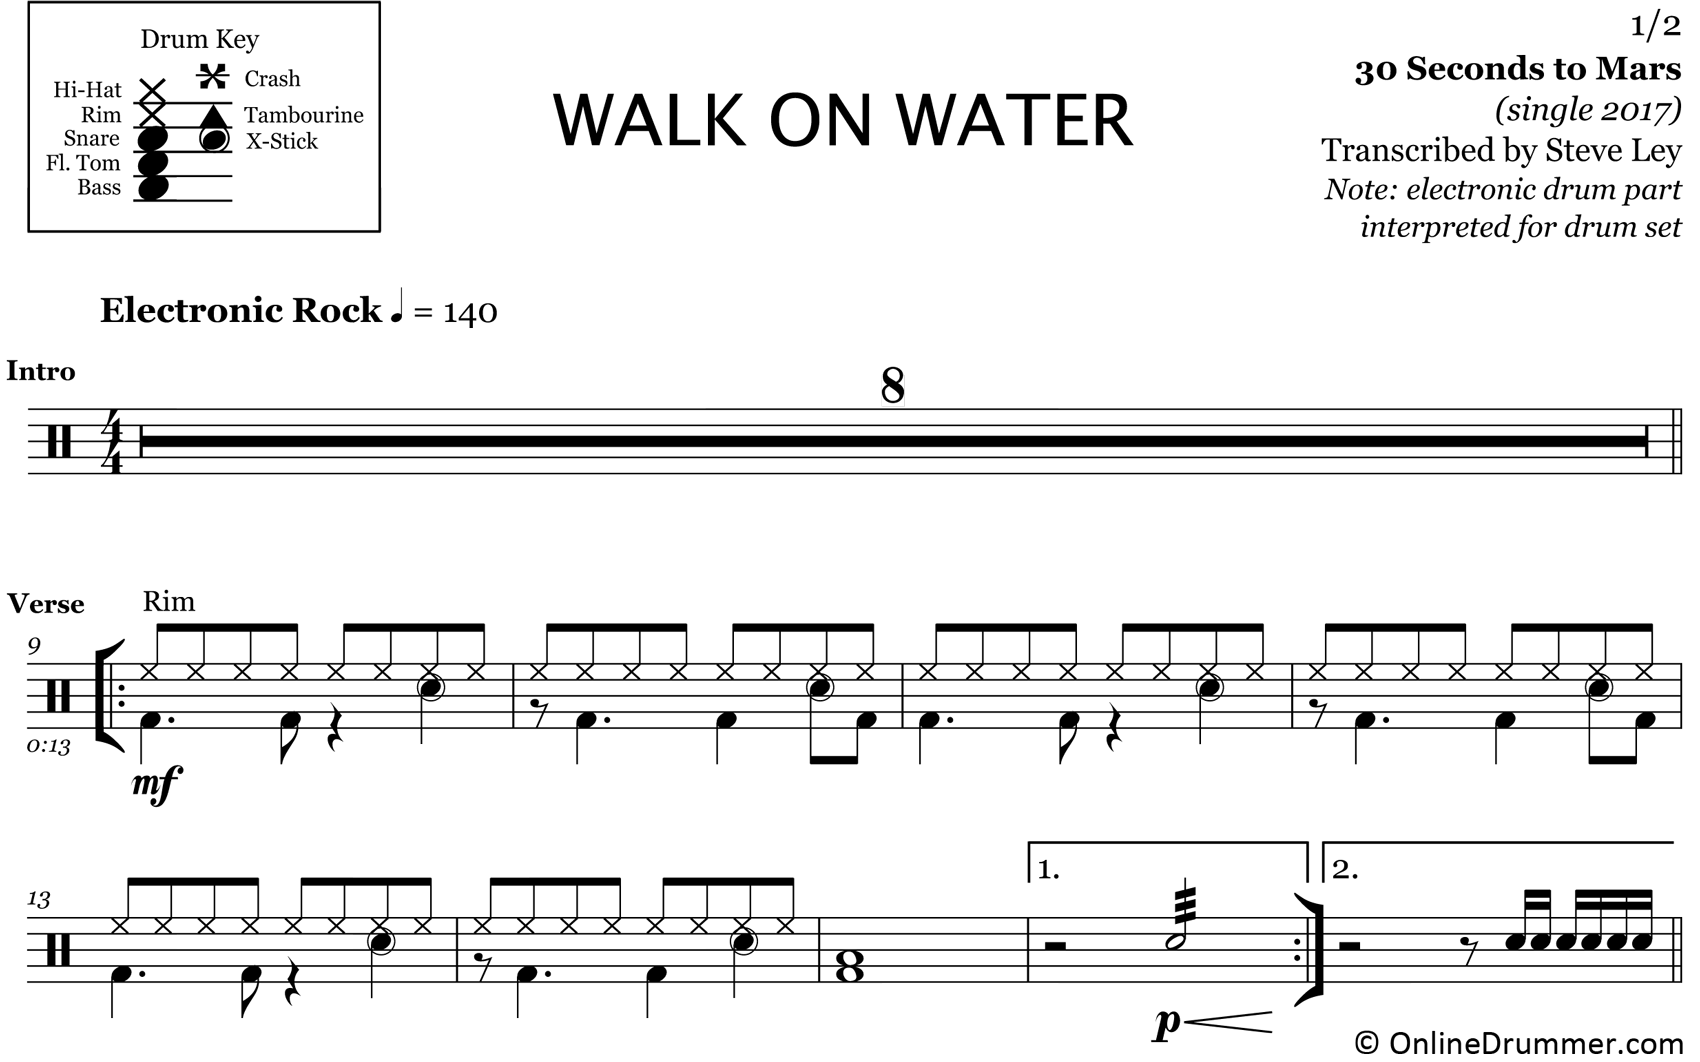 Walk On Water - 30 Seconds To Mars - Drum Sheet Music